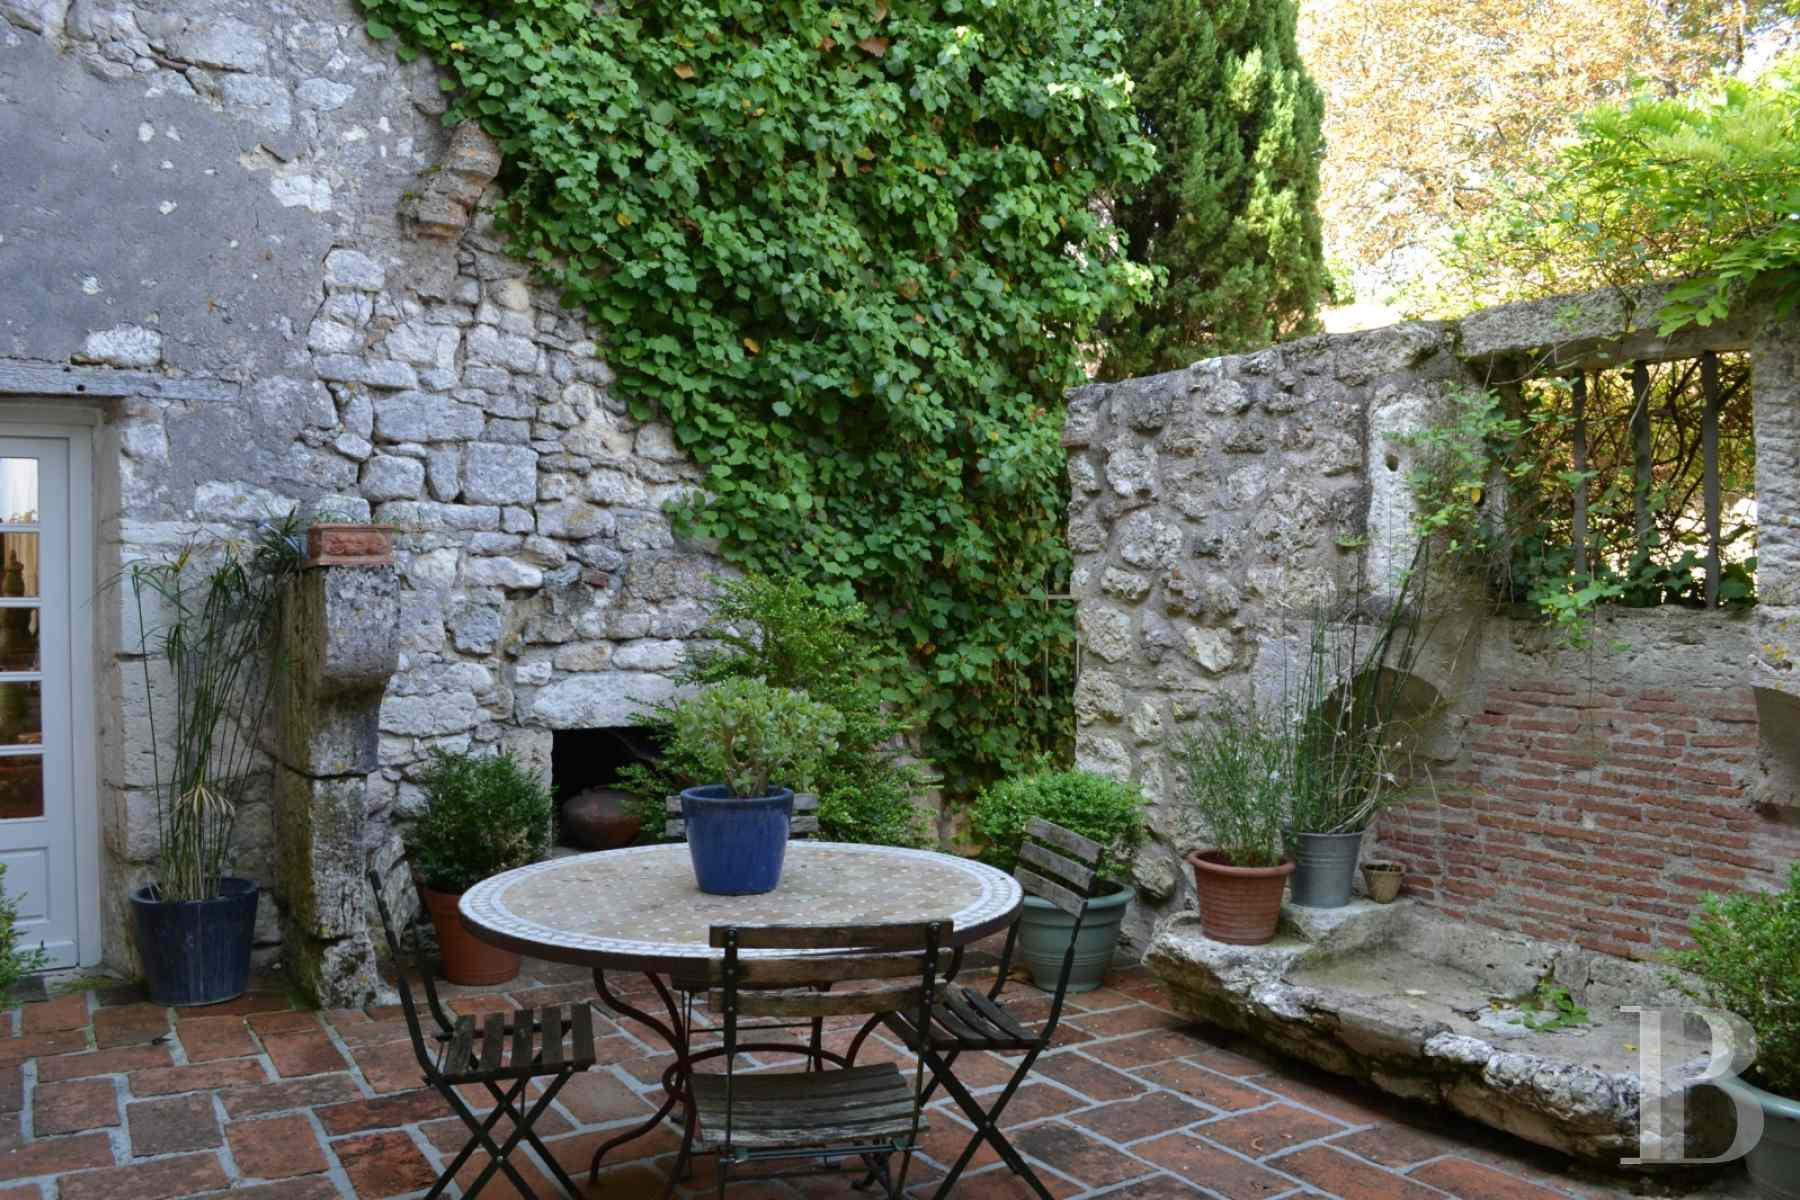 property for sale France aquitaine property 18th - 20 zoom